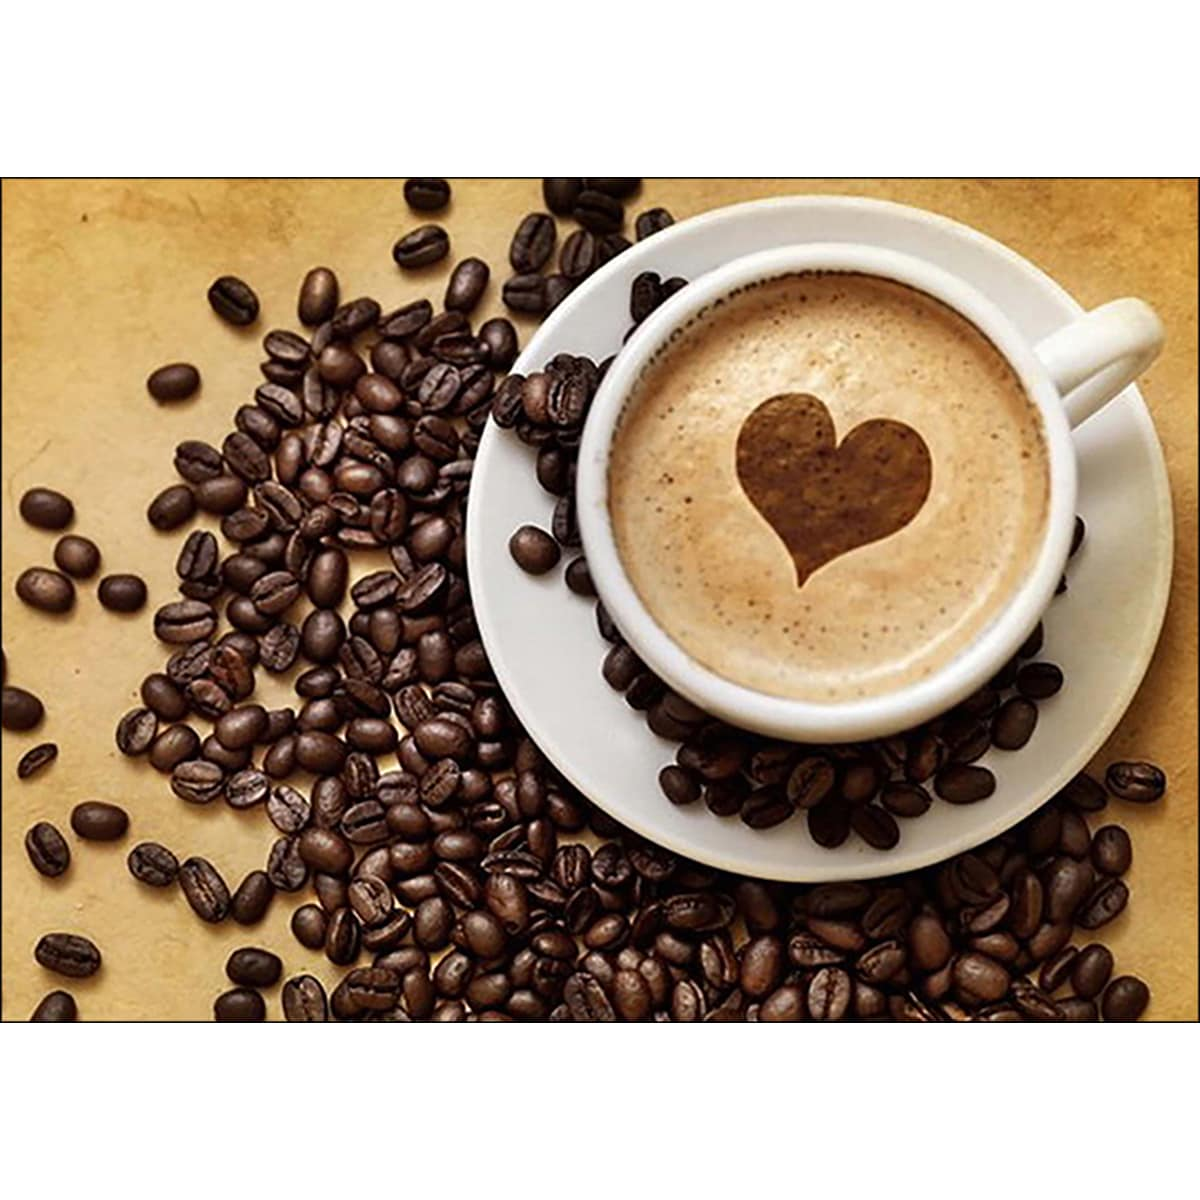 Rto Collection D'Art Diamond Embroidery/Printed/Gem Kit 27X19cm-Coffee For Her